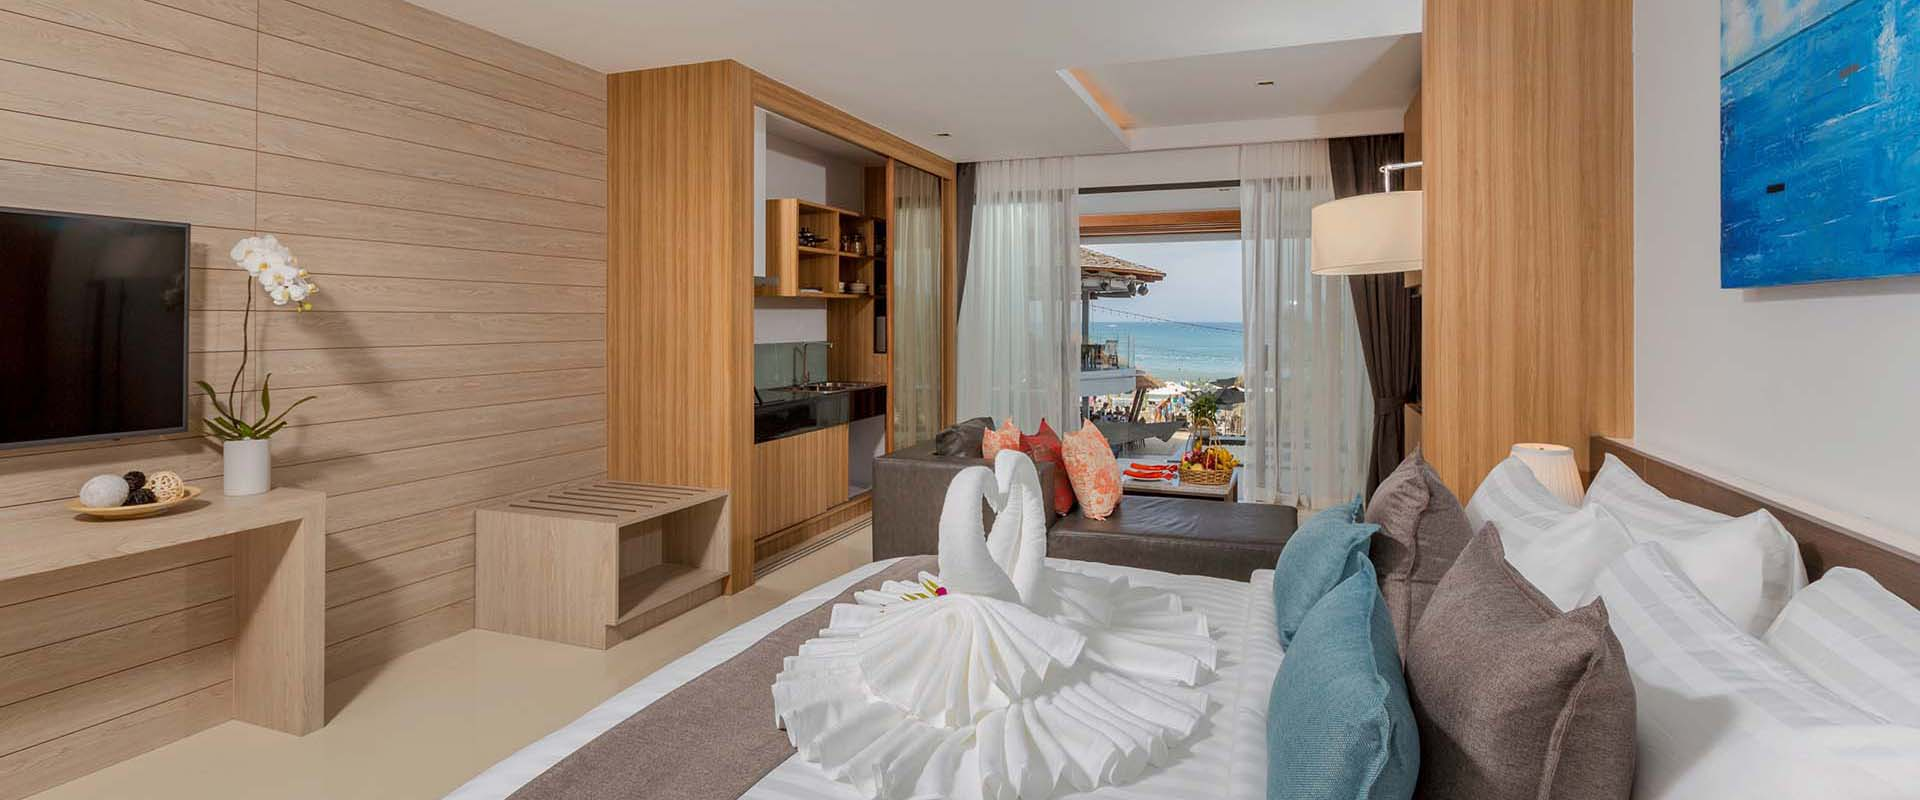 Luxury Beachfront Suites in Patong